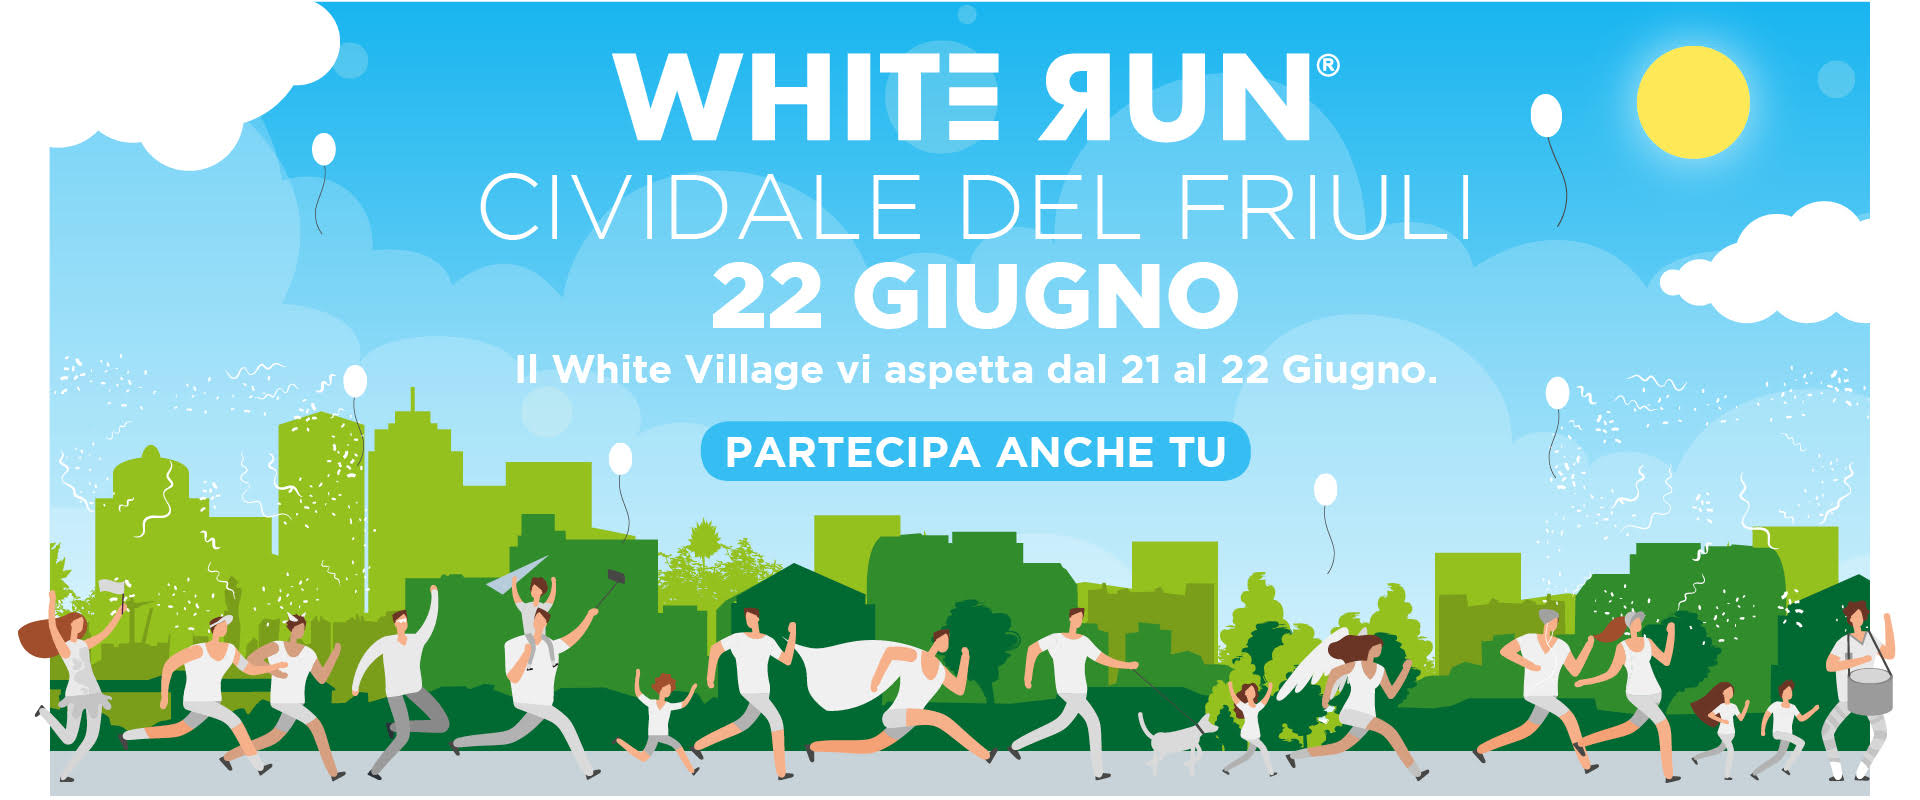 White Run Cividale